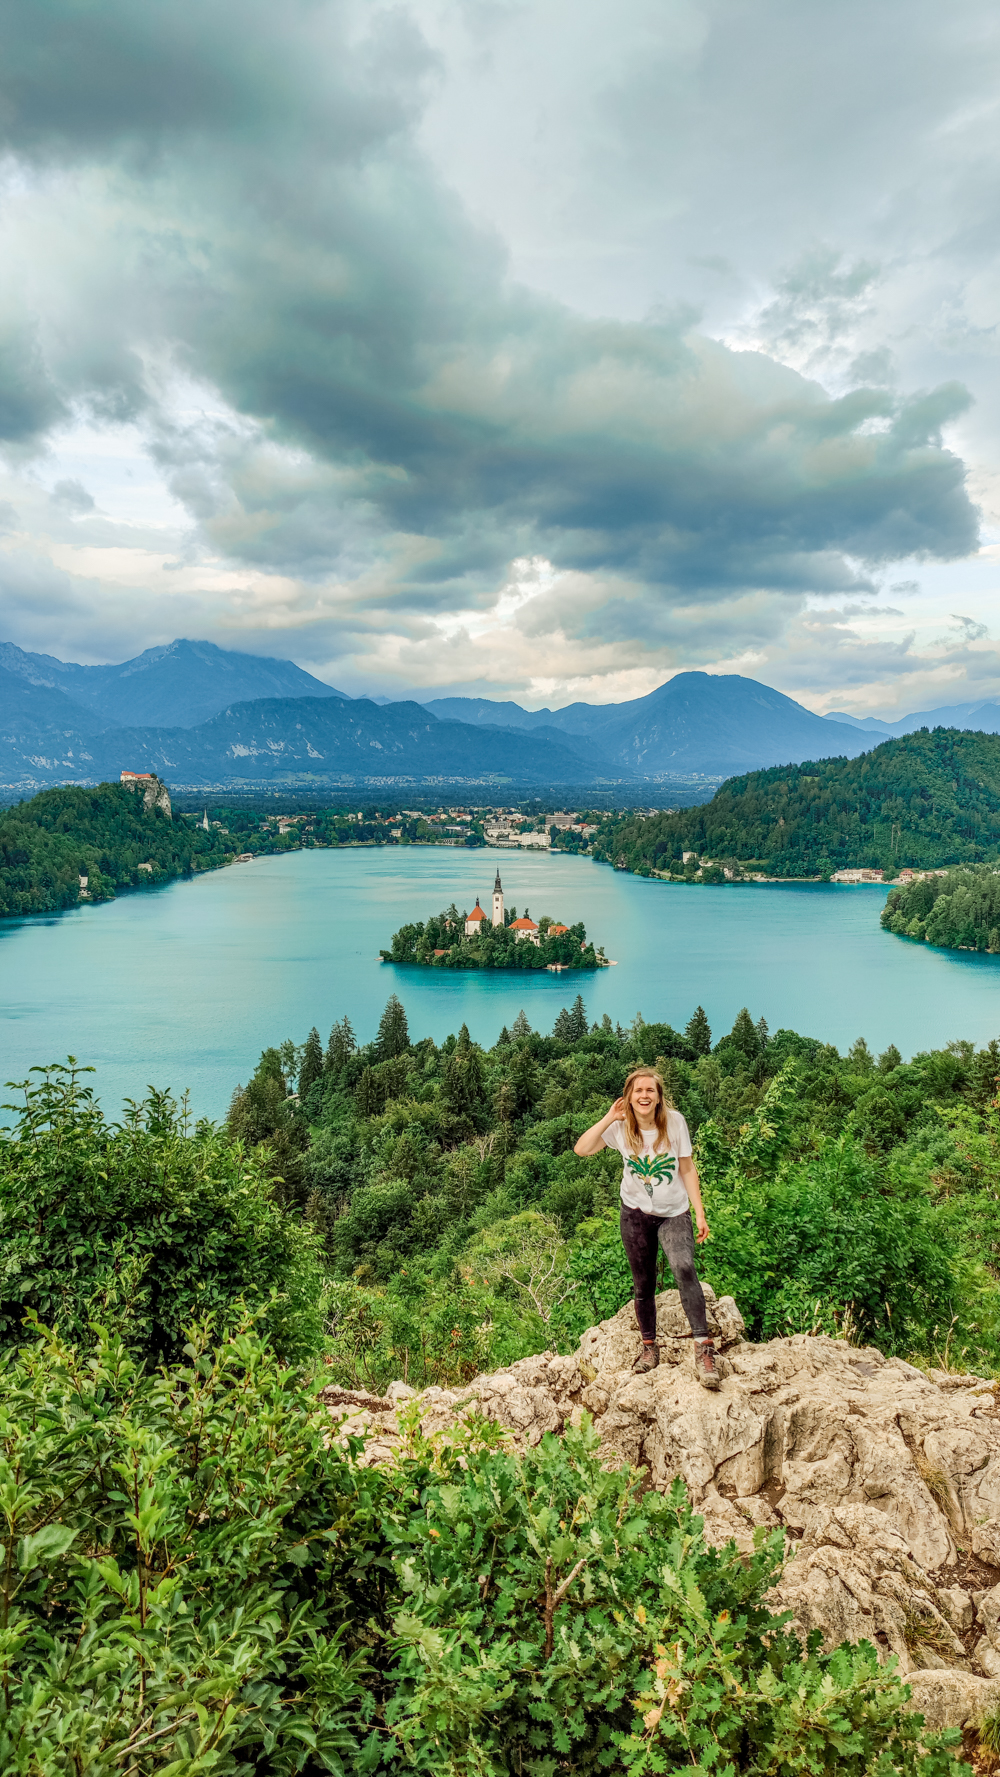 Lake Bled panorama from Ojstrica viewpoint - 4-day Slovenia travel itinerary for the best outdoor adventures | Aliz's Wonderland